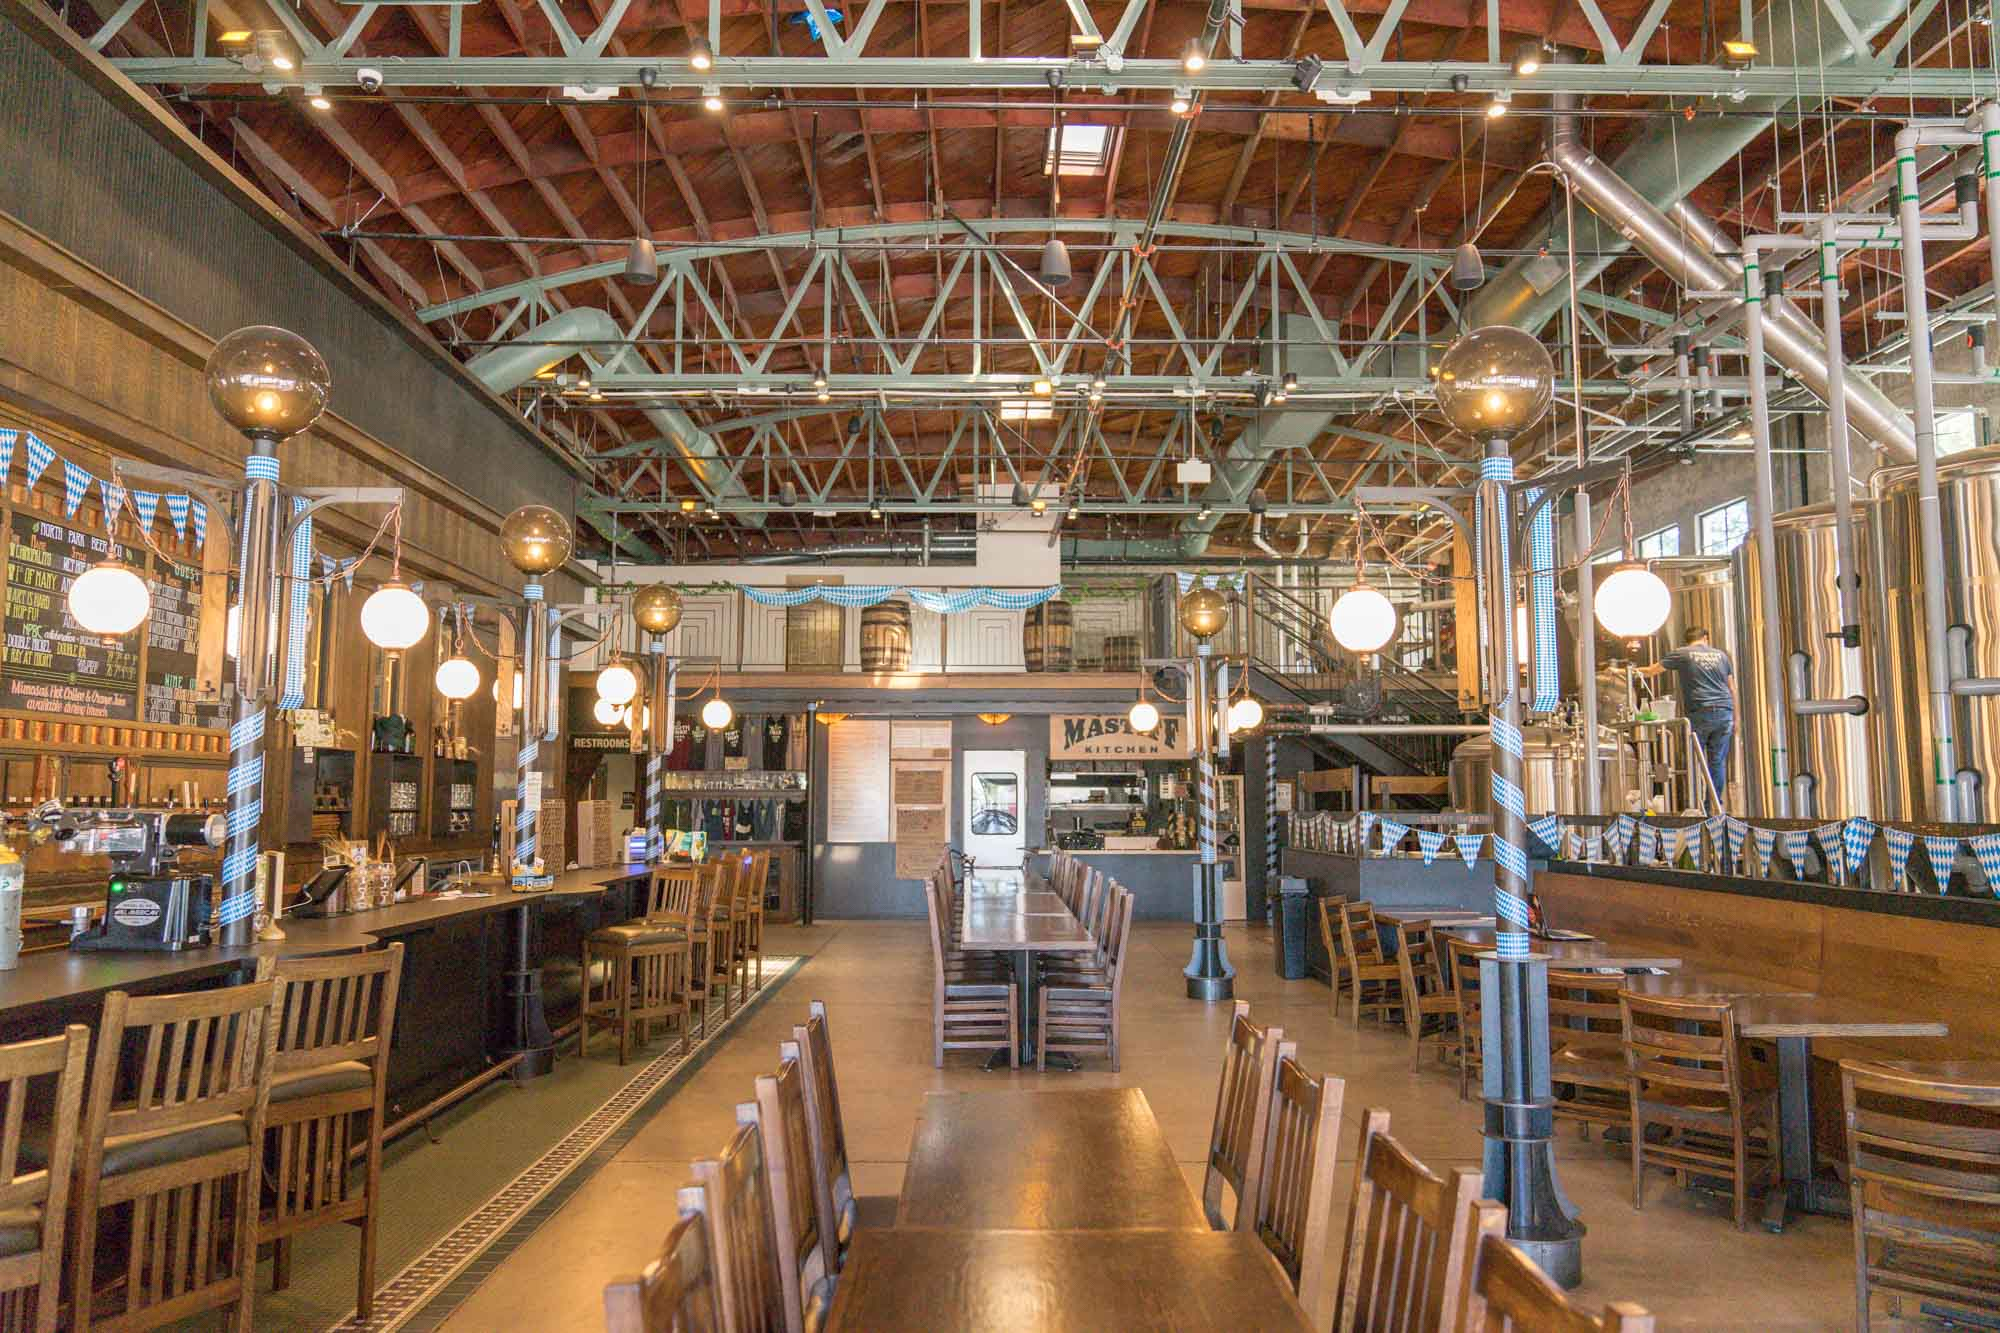 The bar and restaurant at North Park Beer Co. in San Diego, California for Dirt Road Travels